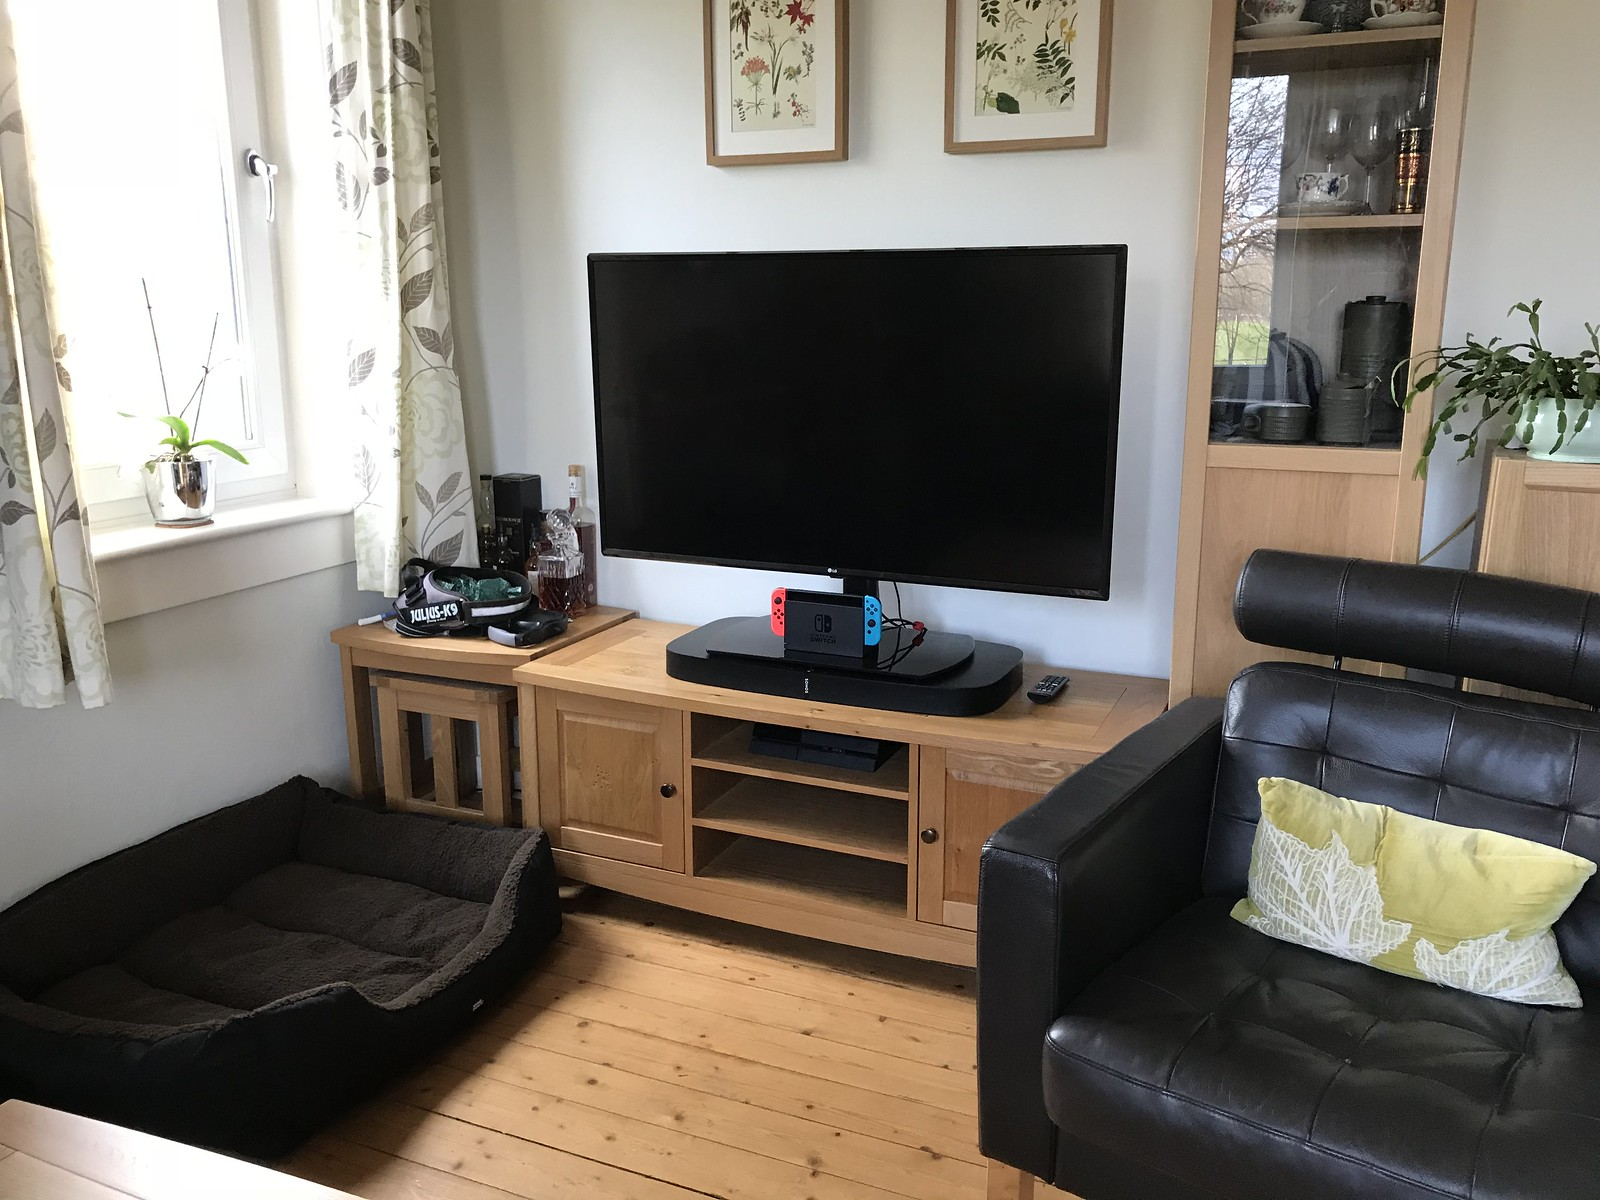 My Nintendo Switch setup in the living room